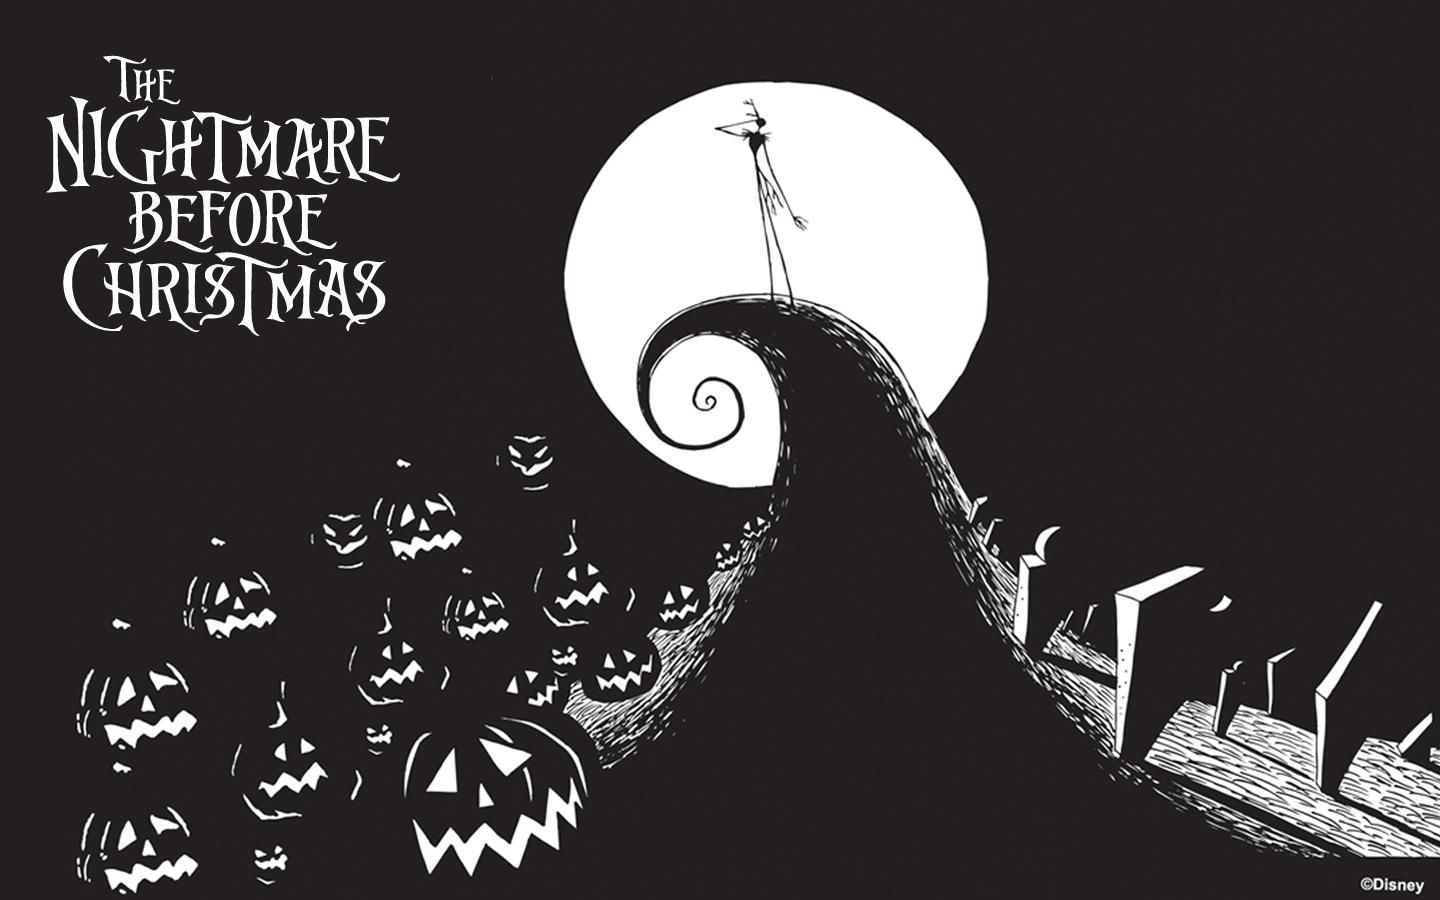 Cool Wallpaper Halloween Nightmare Before Christmas - a8aa9619c0895534cbf6c3aa37d9f36e  2018_94153.jpg